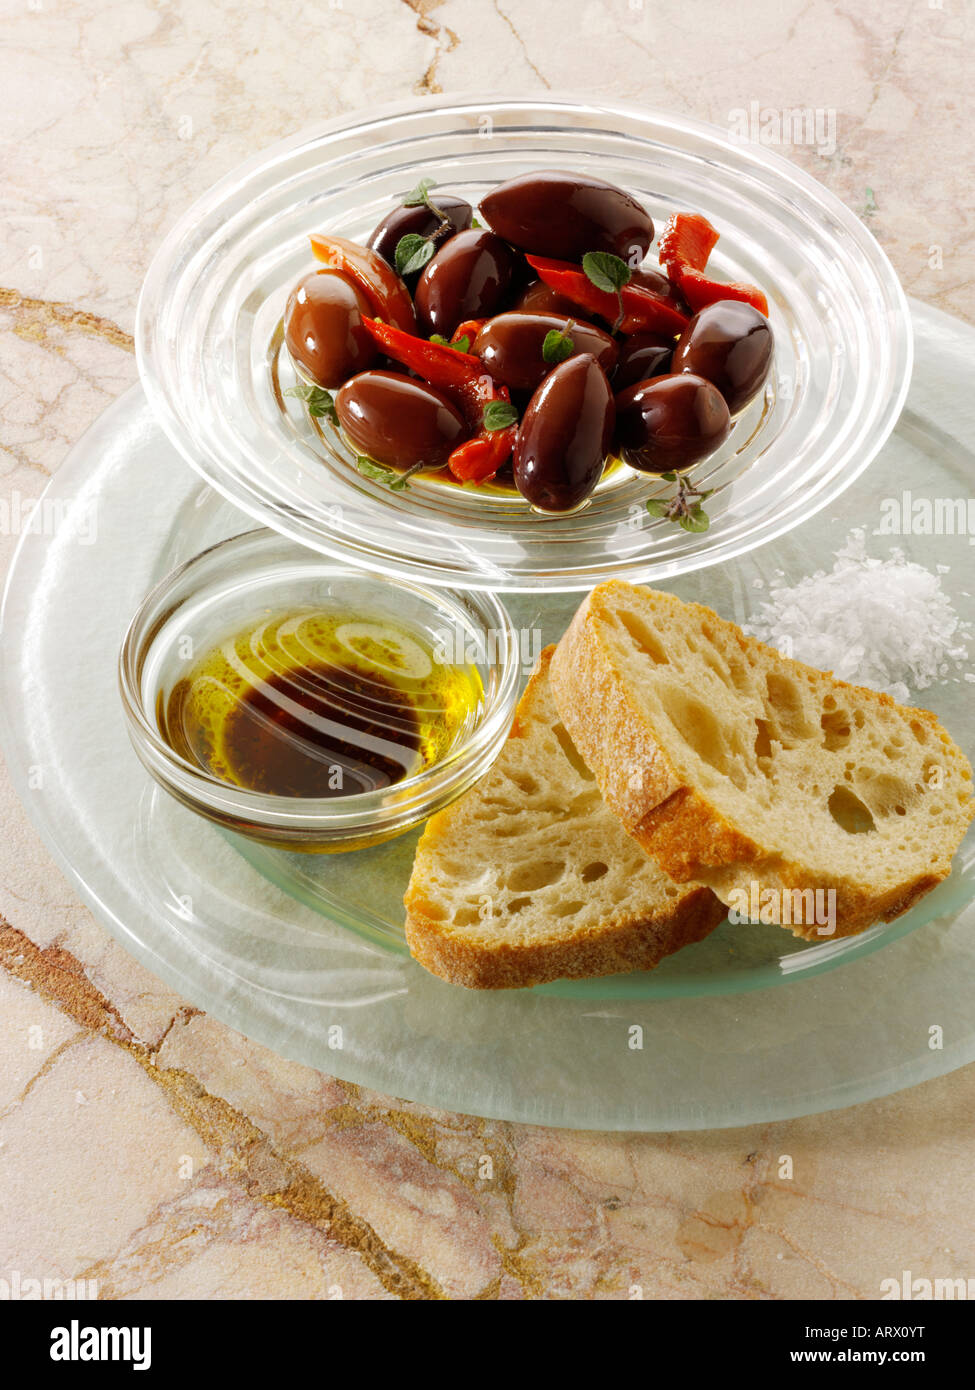 Olives with bread and olive oil dip - Stock Image